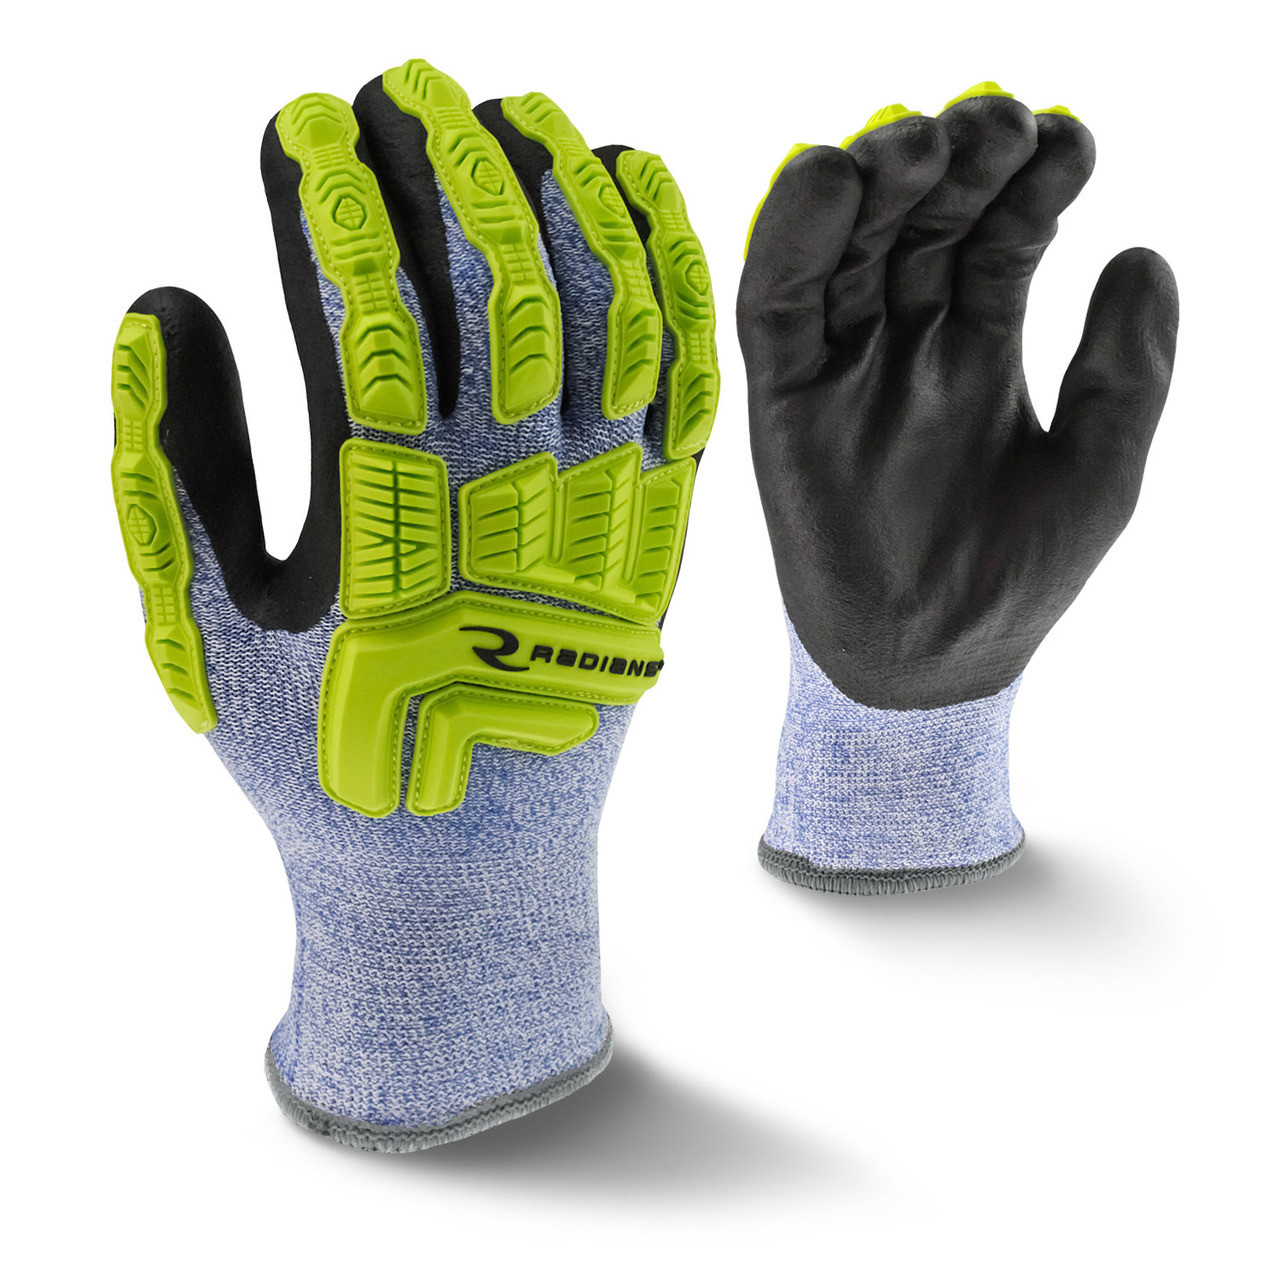 Cut Protection Level A4 Cold Weather Coated Glove